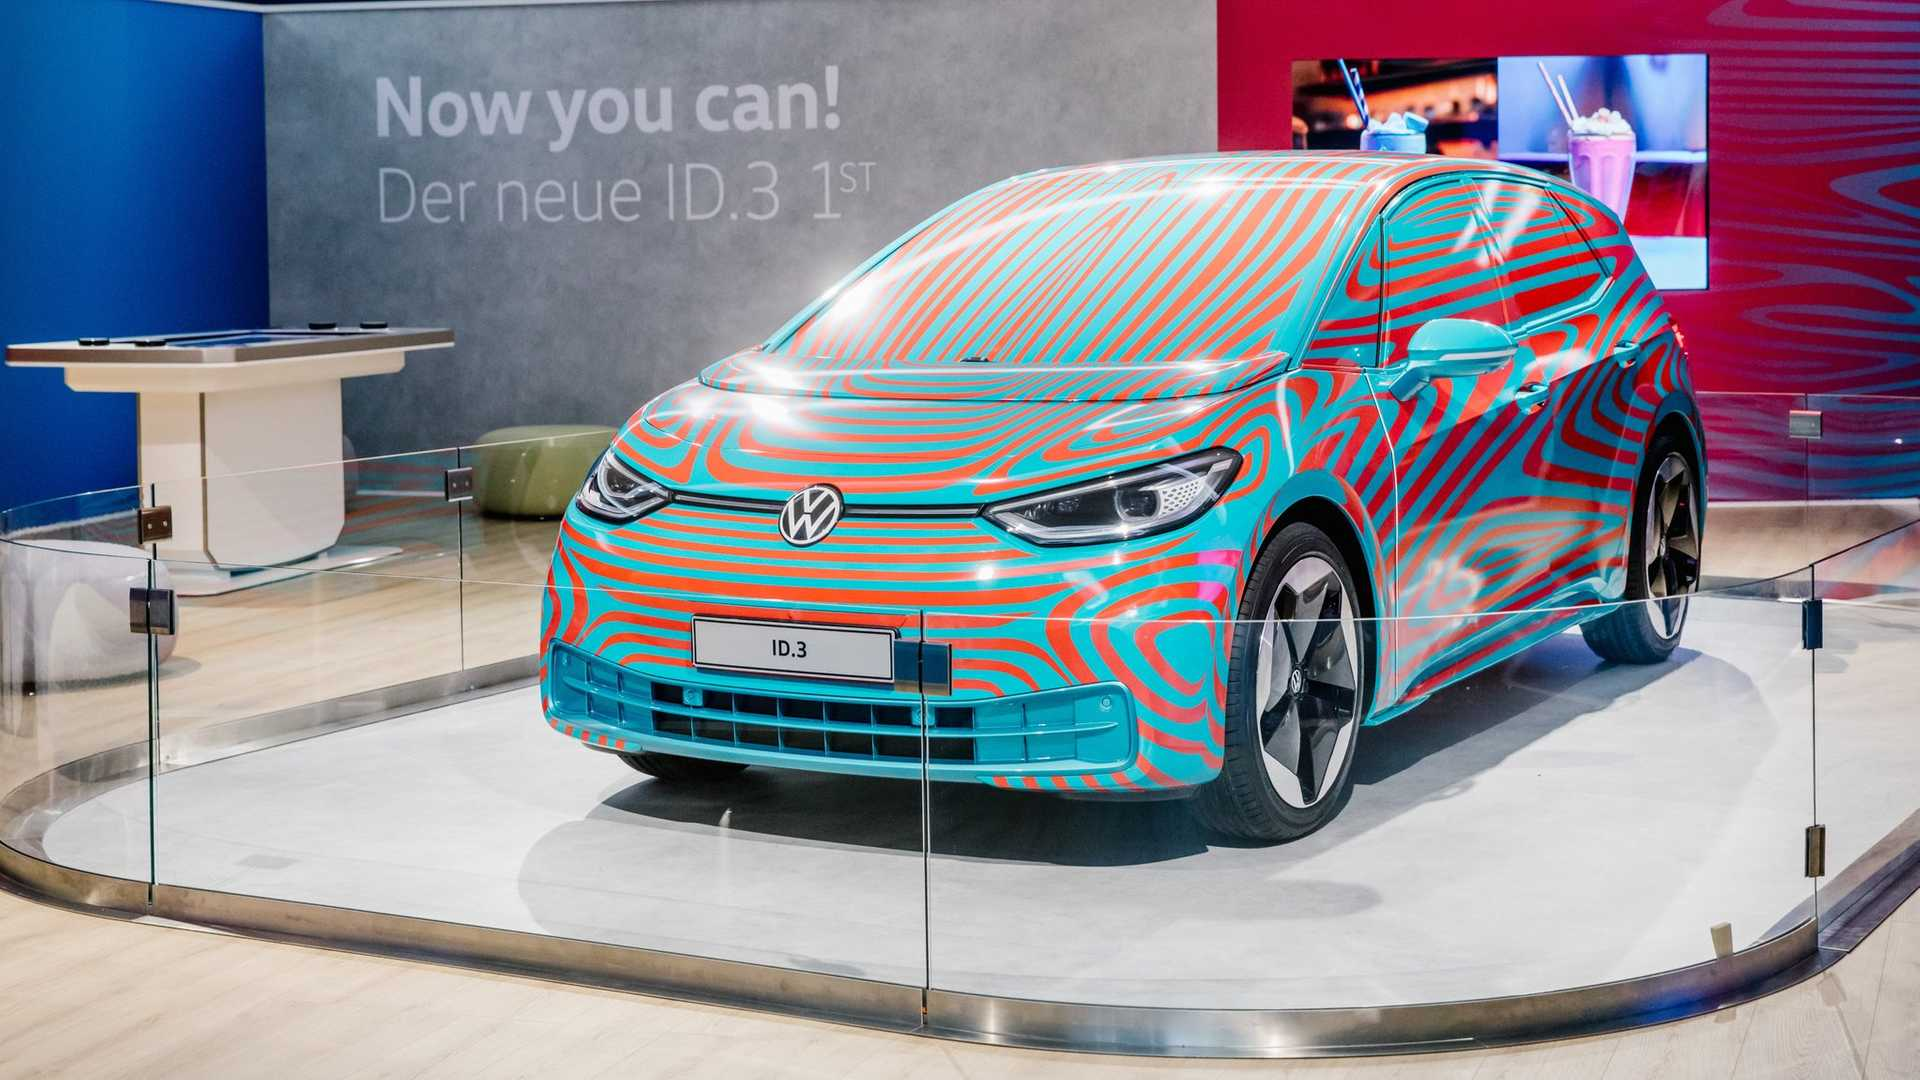 volkswagen-id-3 2020 now you can